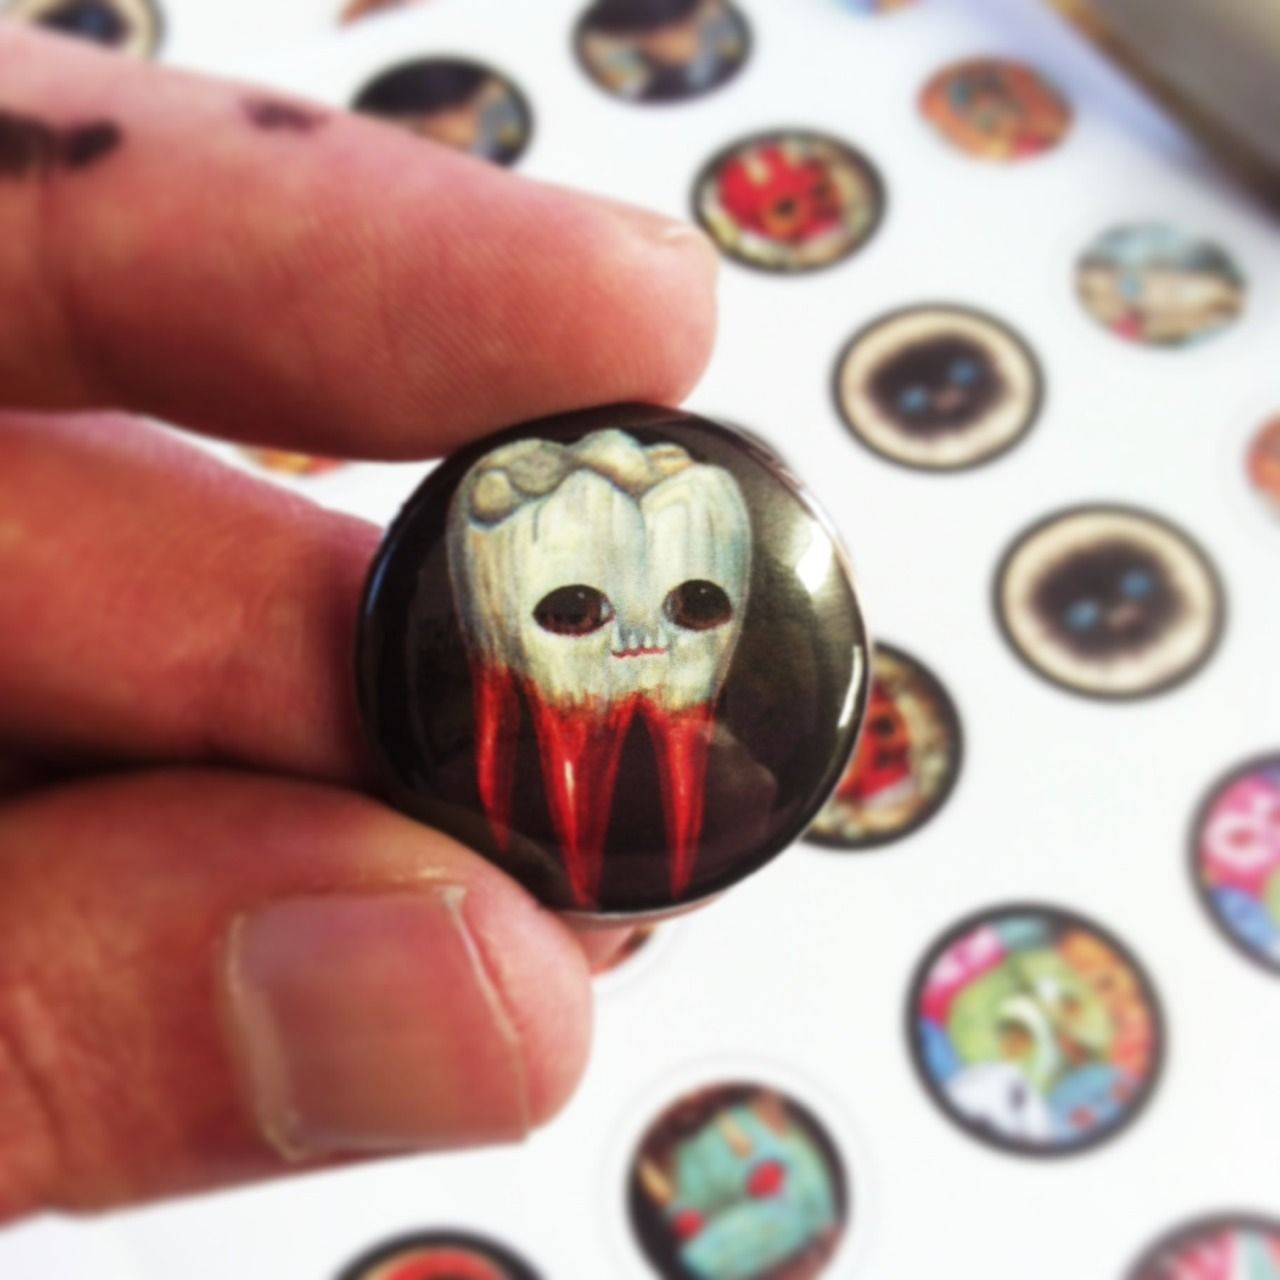 Blood - #artist #blood #buttons #on #raudiel #sangre #tooth #tumblr